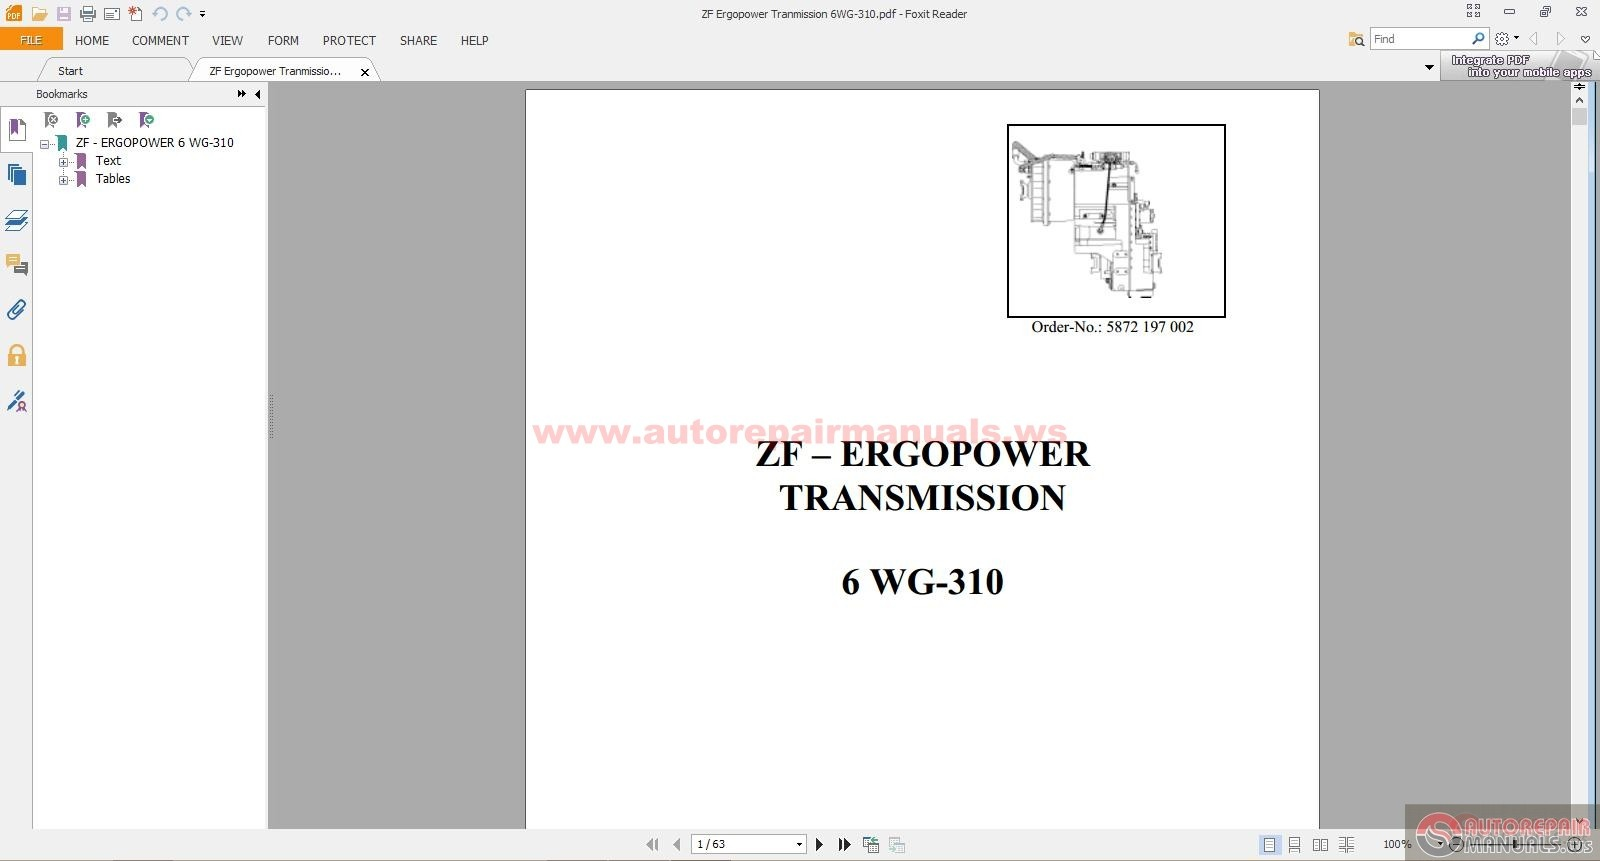 Zf Ergopower Tranmission 6wg 310 Auto Repair Manual